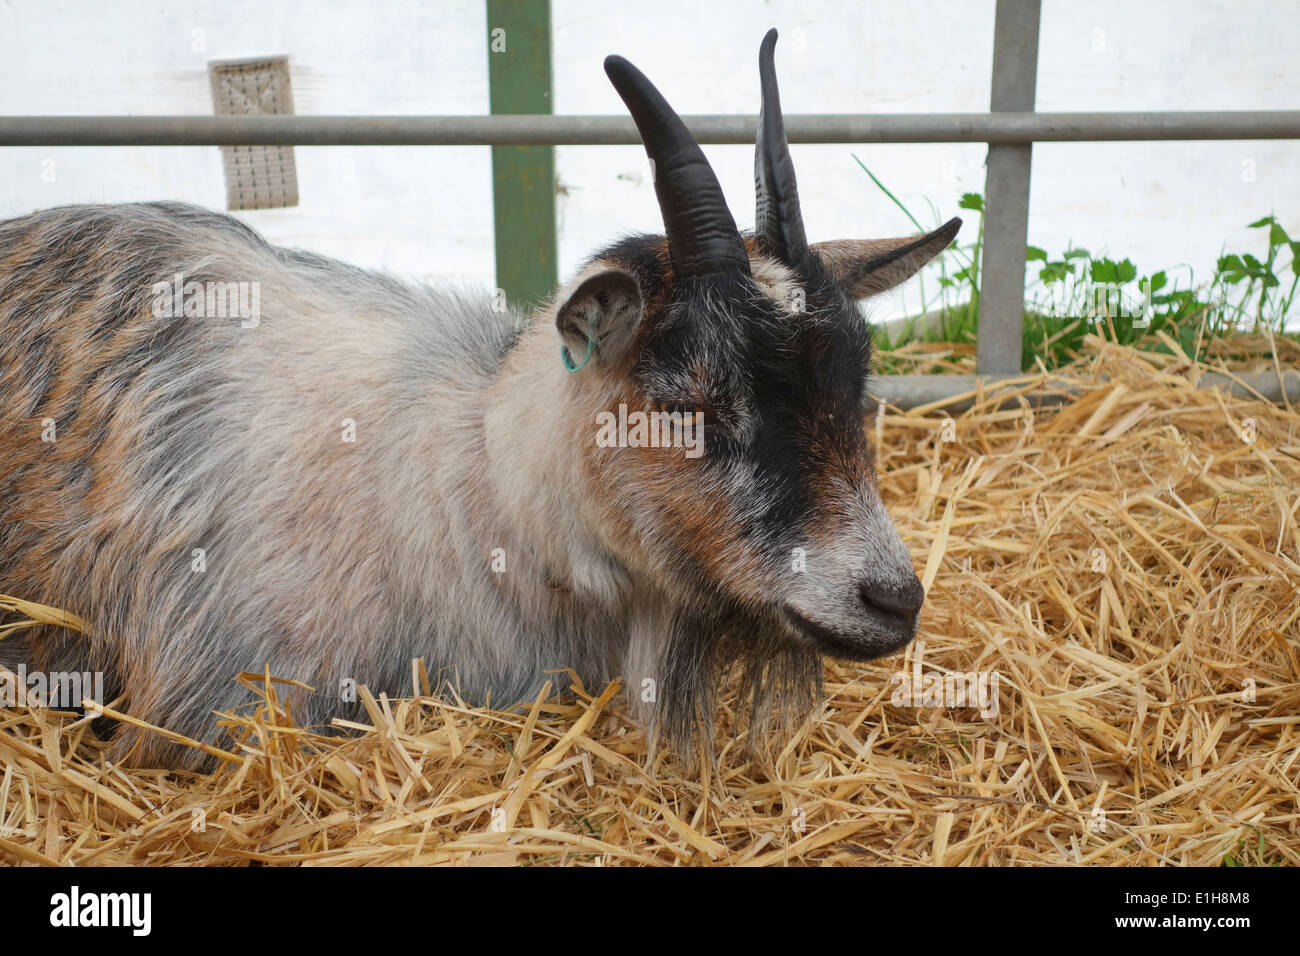 A pygmy goat at The Bath & West Show, Shepton Mallet, Wilts - Stock Image